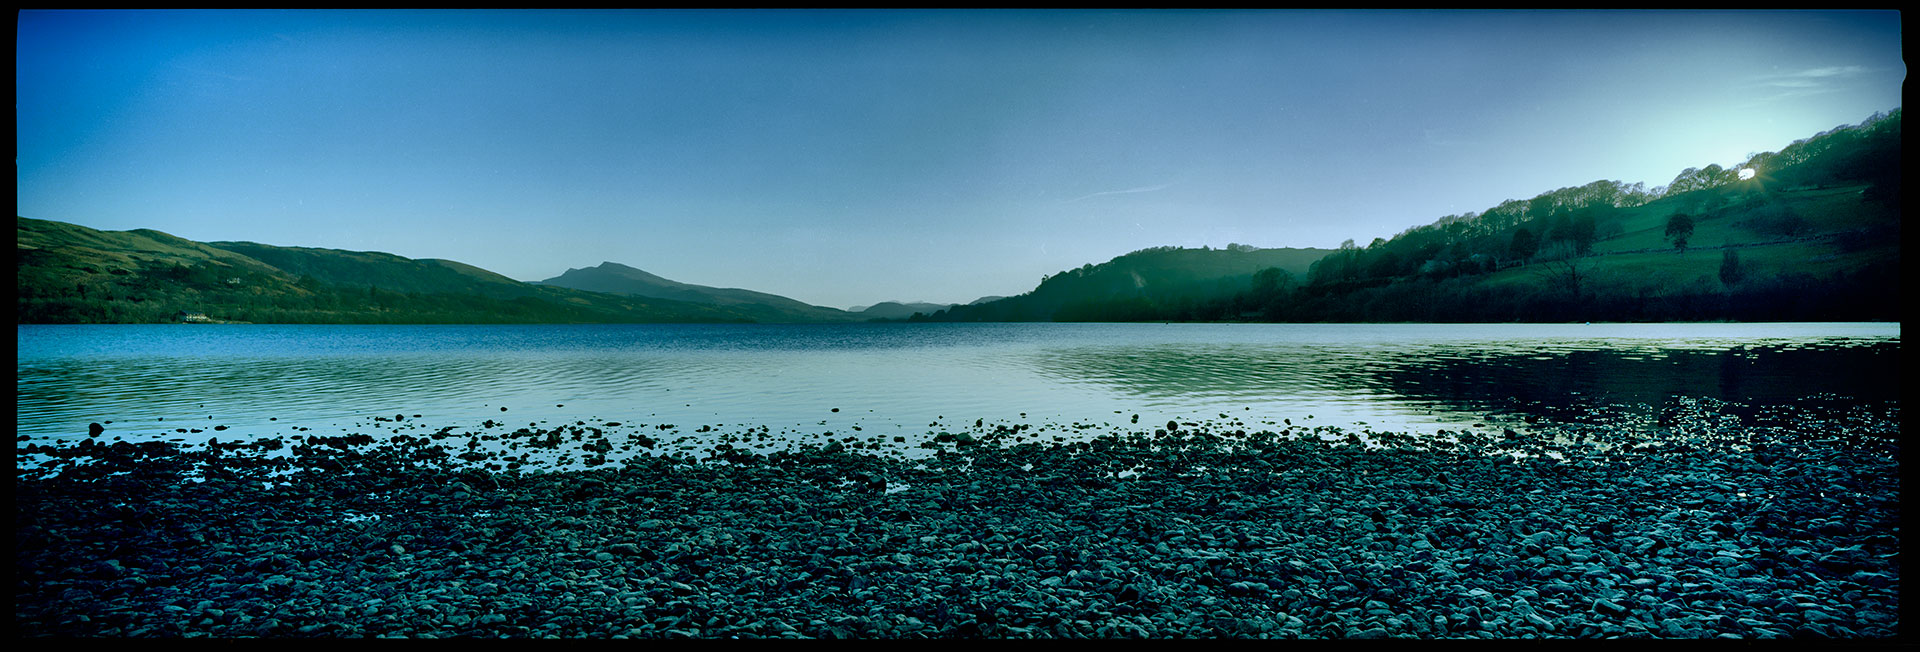 Sunset at Bala Lake, still exploring with images from the 617.